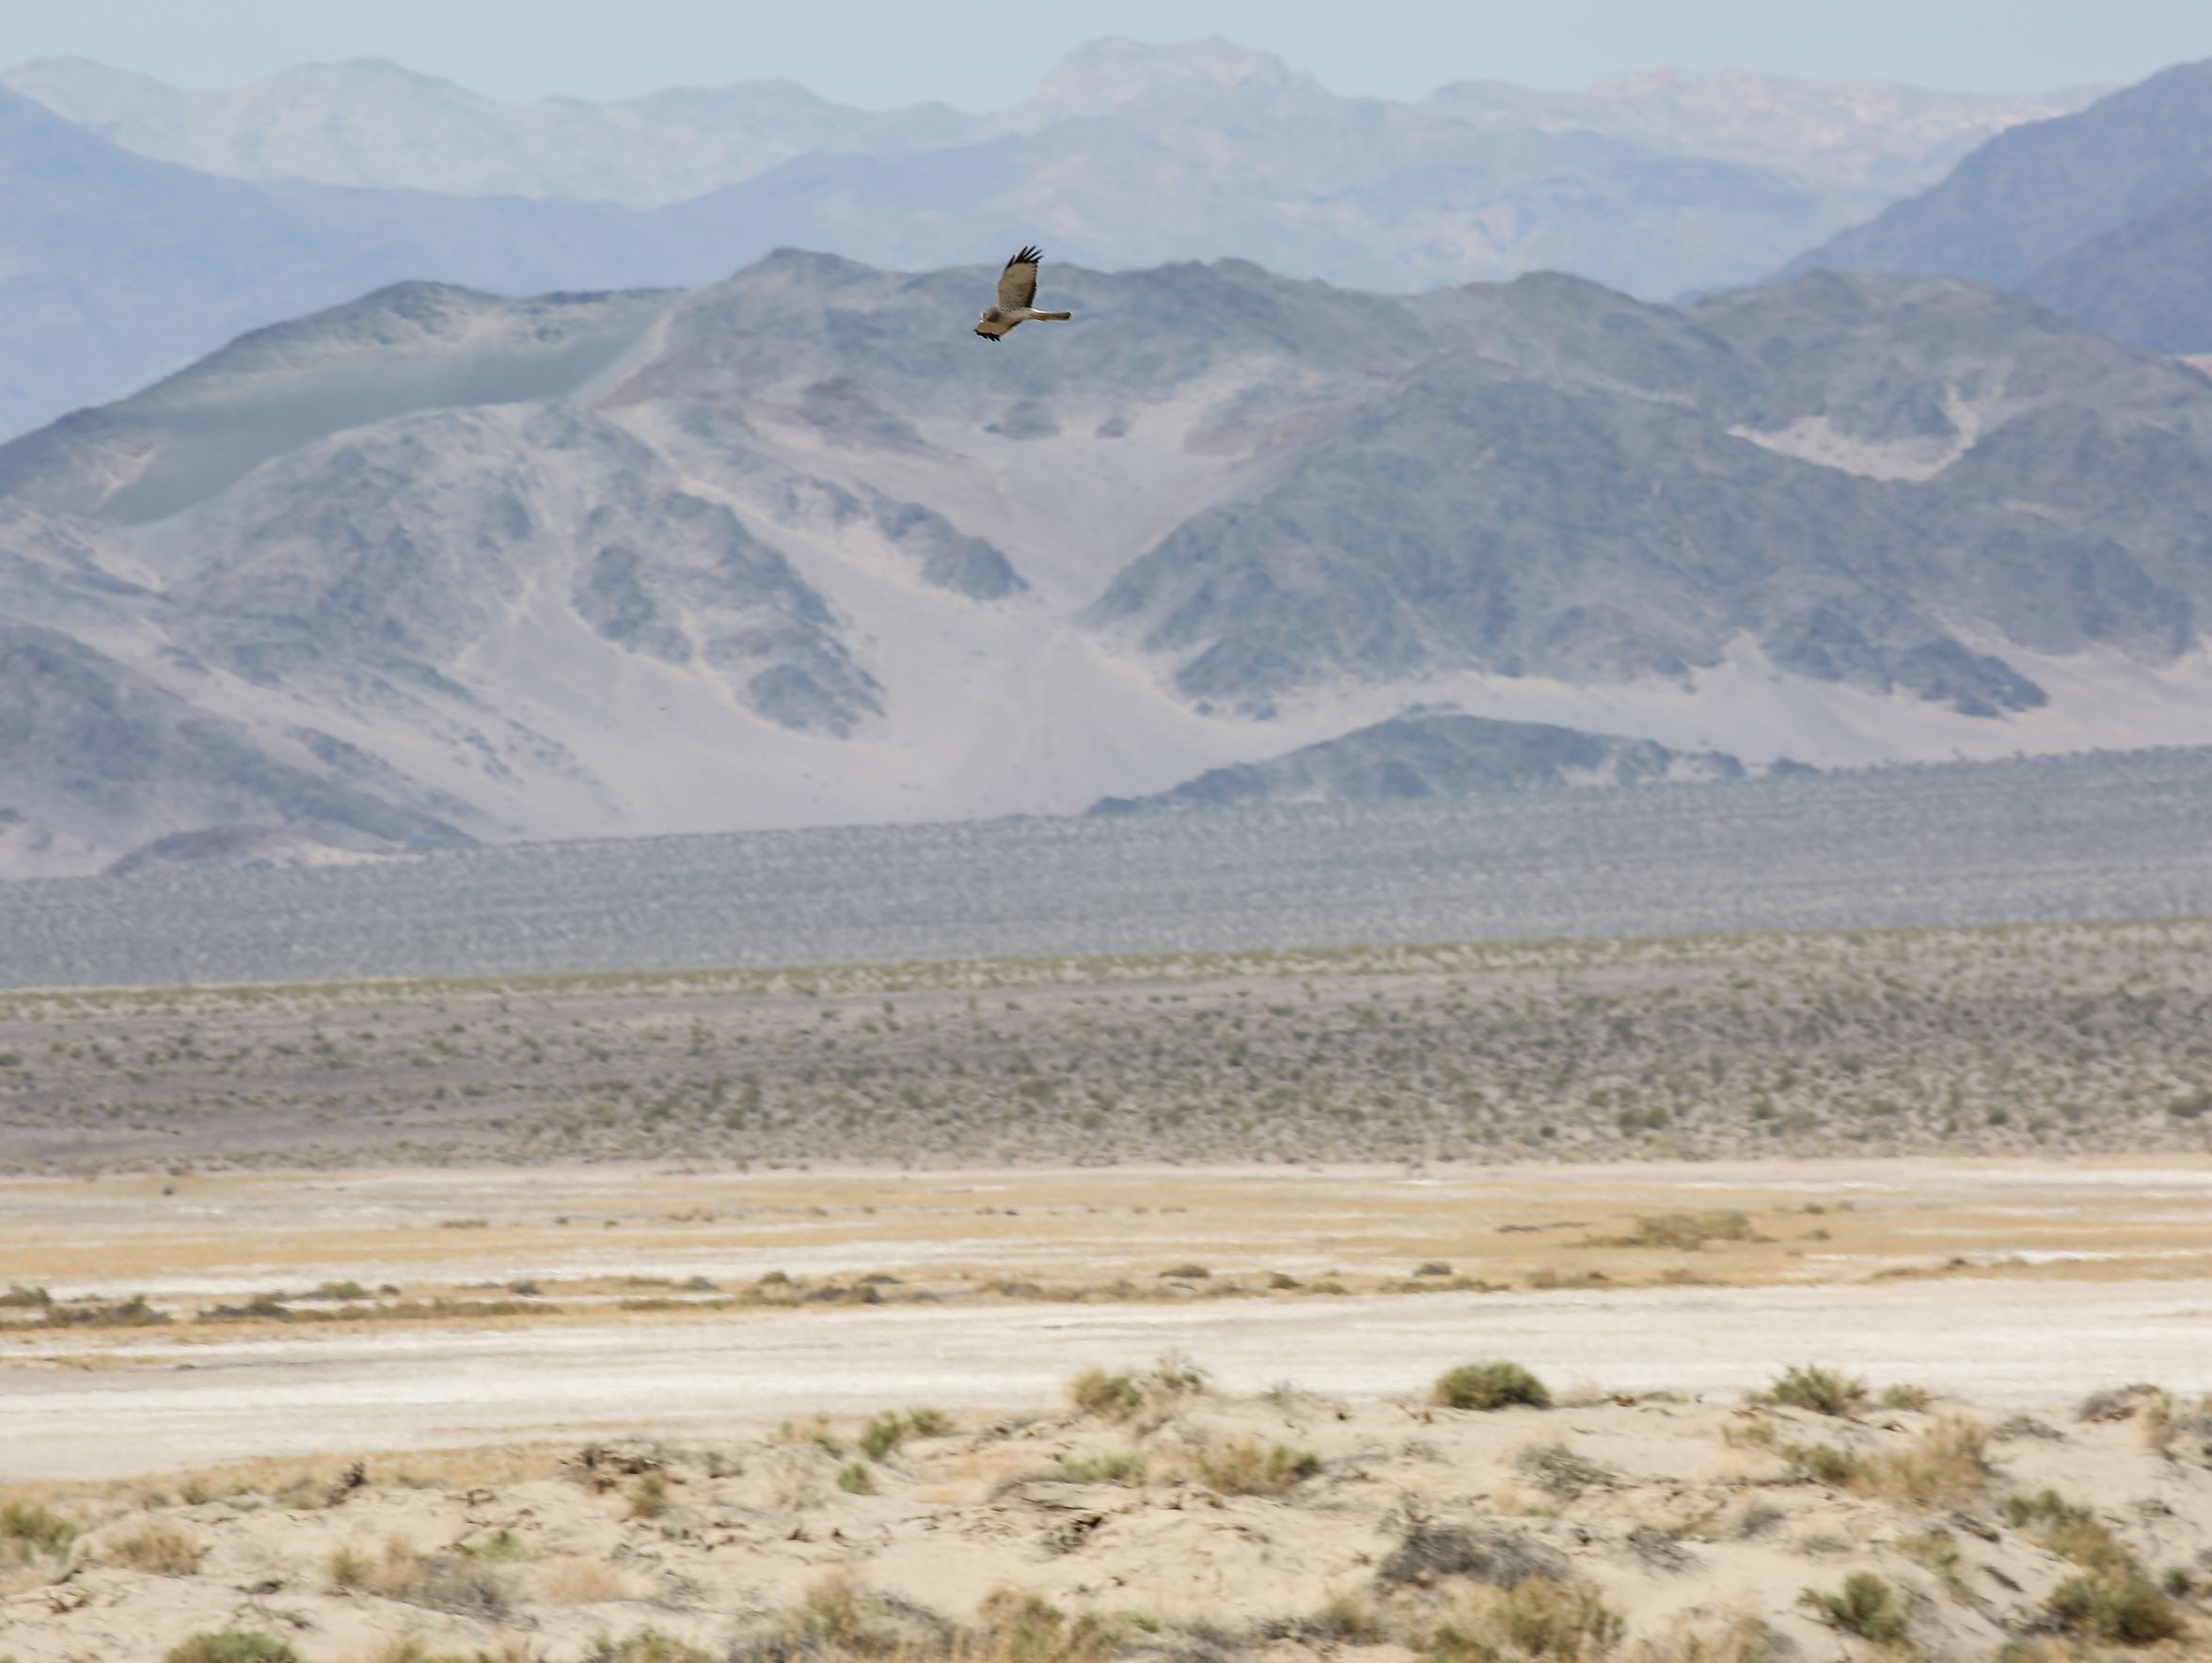 A bird of prey flies near Saratoga Springs, an oasis at the southern end of Death Valley National Park in California.